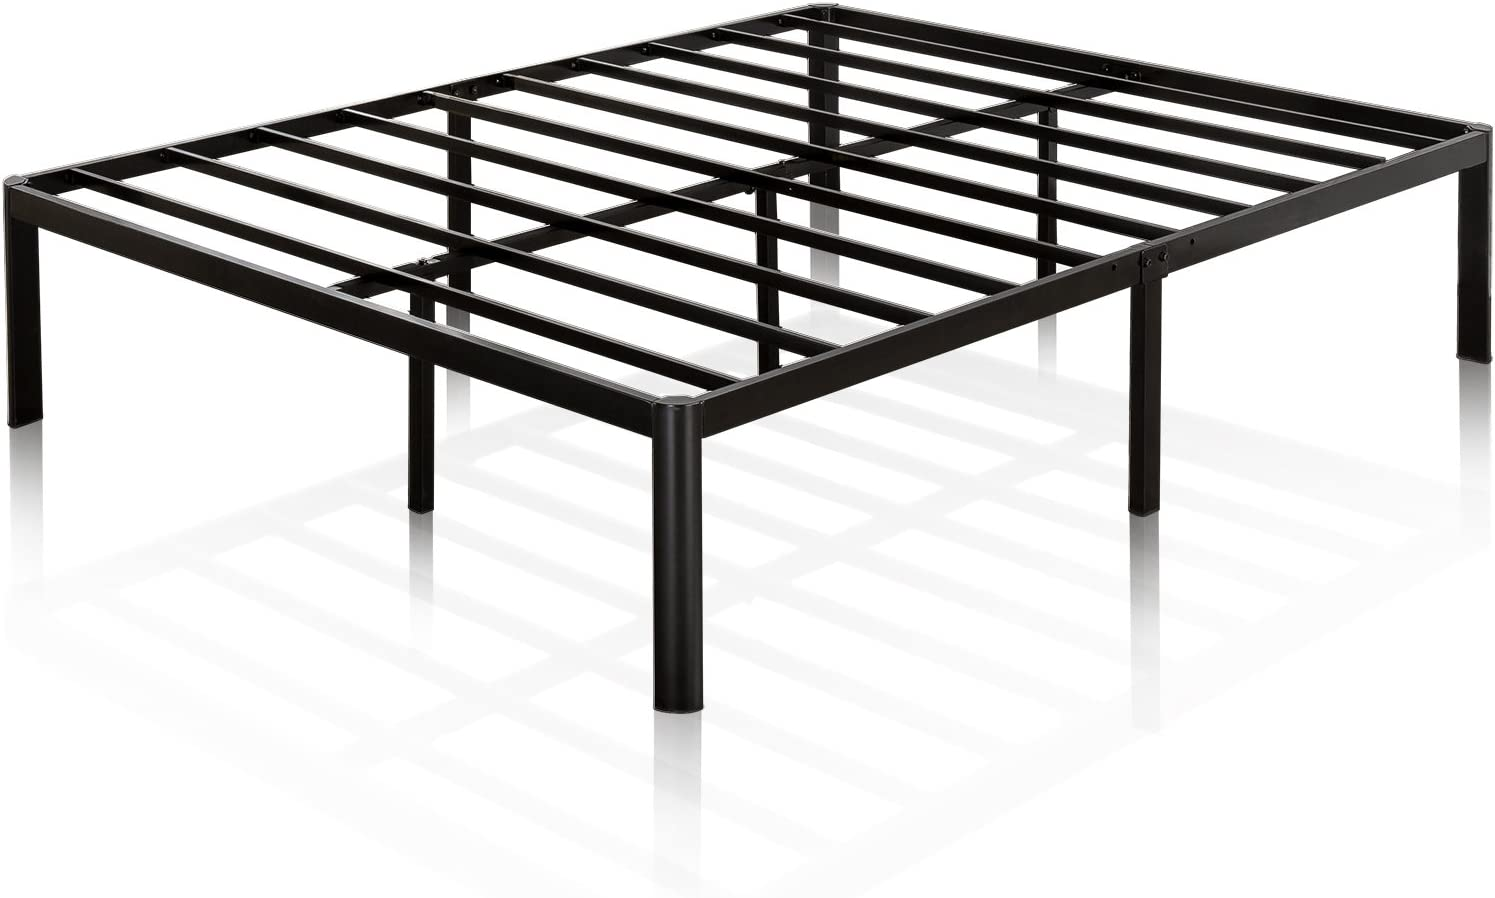 ZIYOO Box Spring Queen 9 Inch High Profile Easy Assembly,Mattress Foundation Heavy Duty Metal Steel Structure Quiet Noise-Free